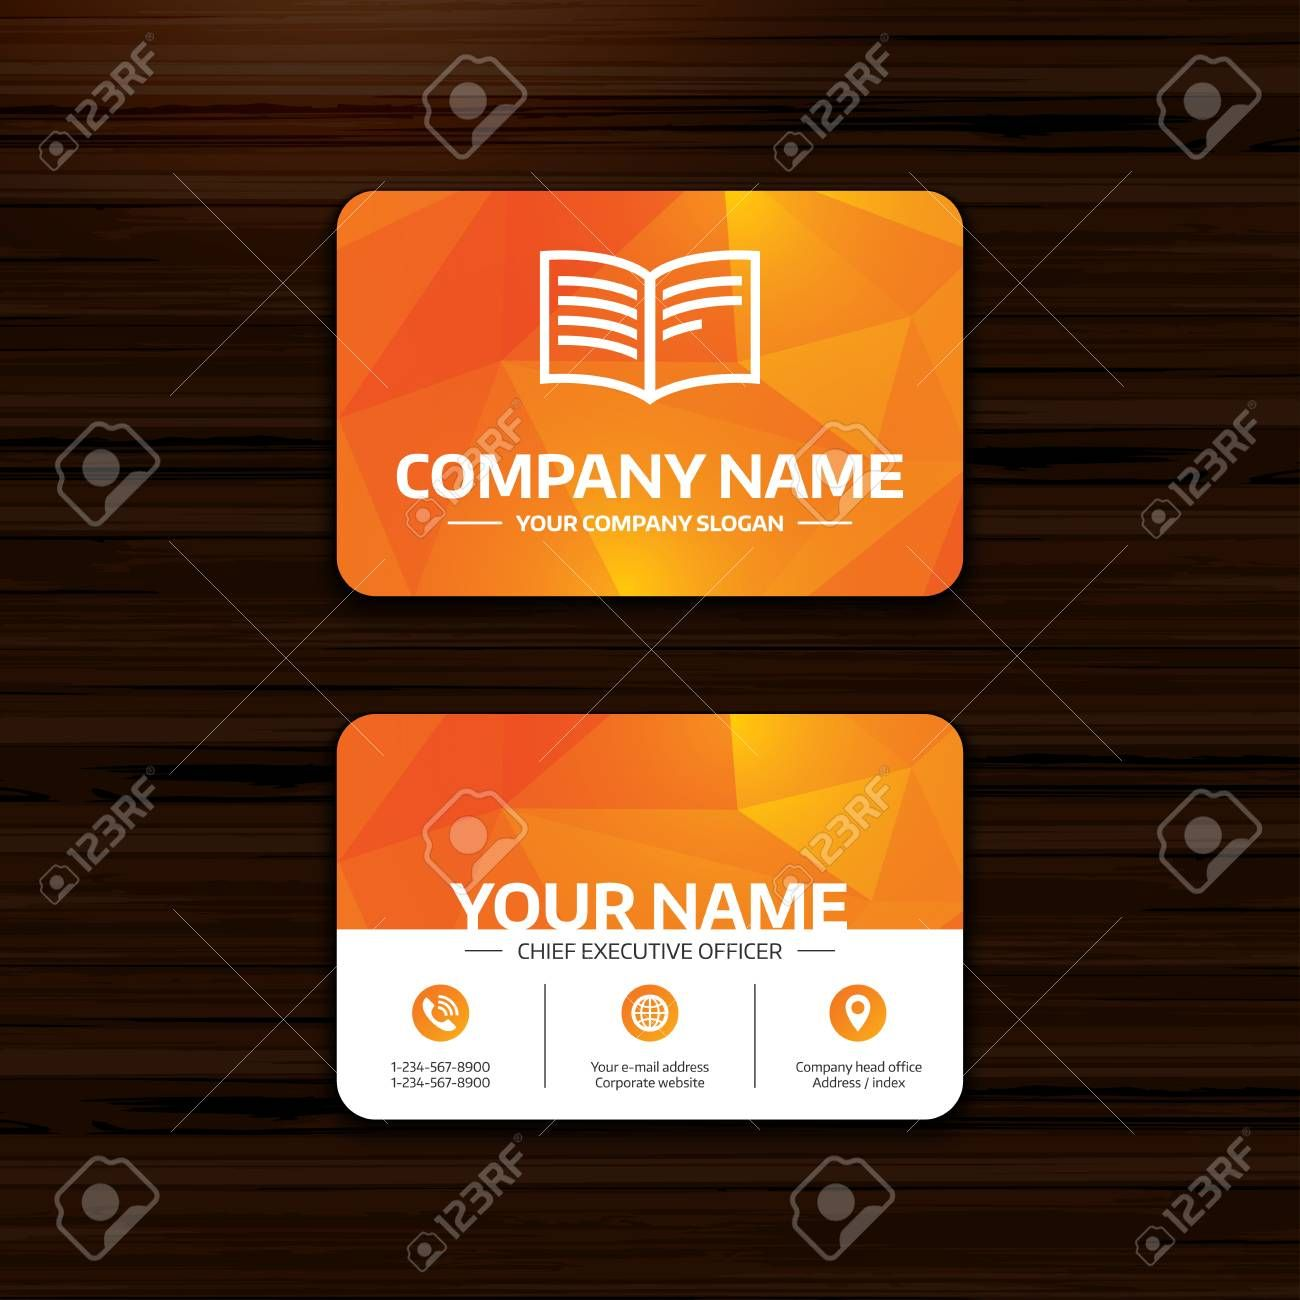 Business Or Visiting Card Template Book Sign Icon Open Book Pertaining To Business Card Visiting Card Templates Visiting Cards Birthday Card Template Free